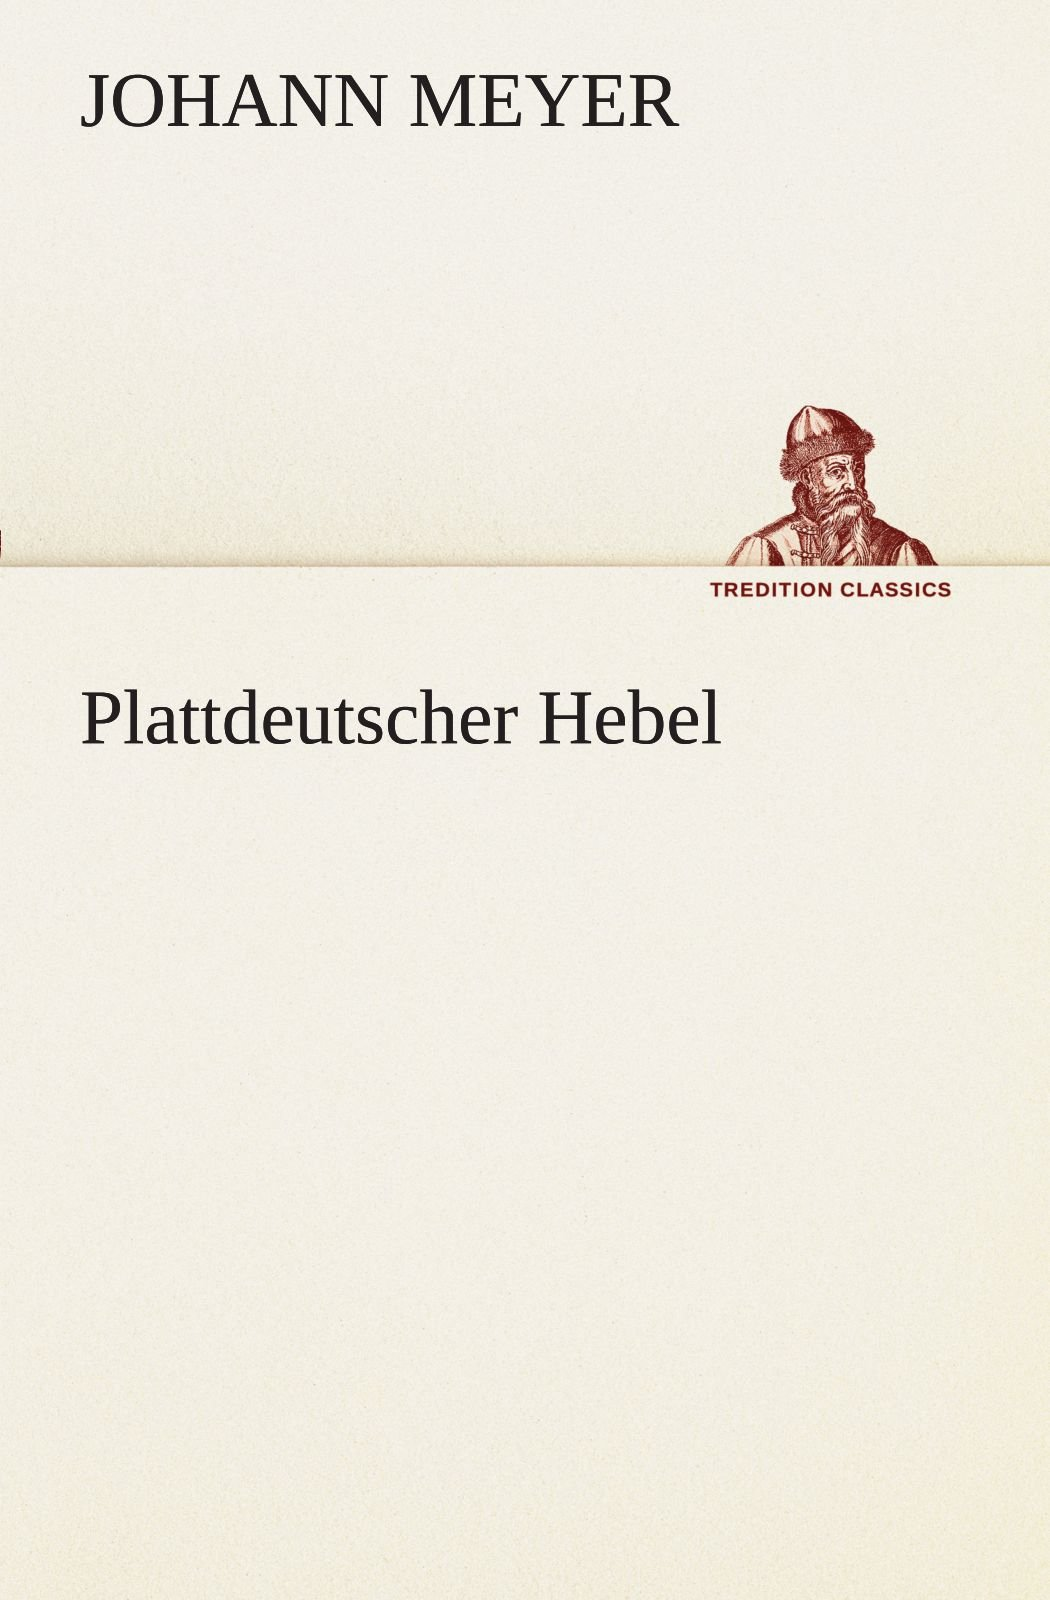 Download Plattdeutscher Hebel (TREDITION CLASSICS) (German Edition) ebook